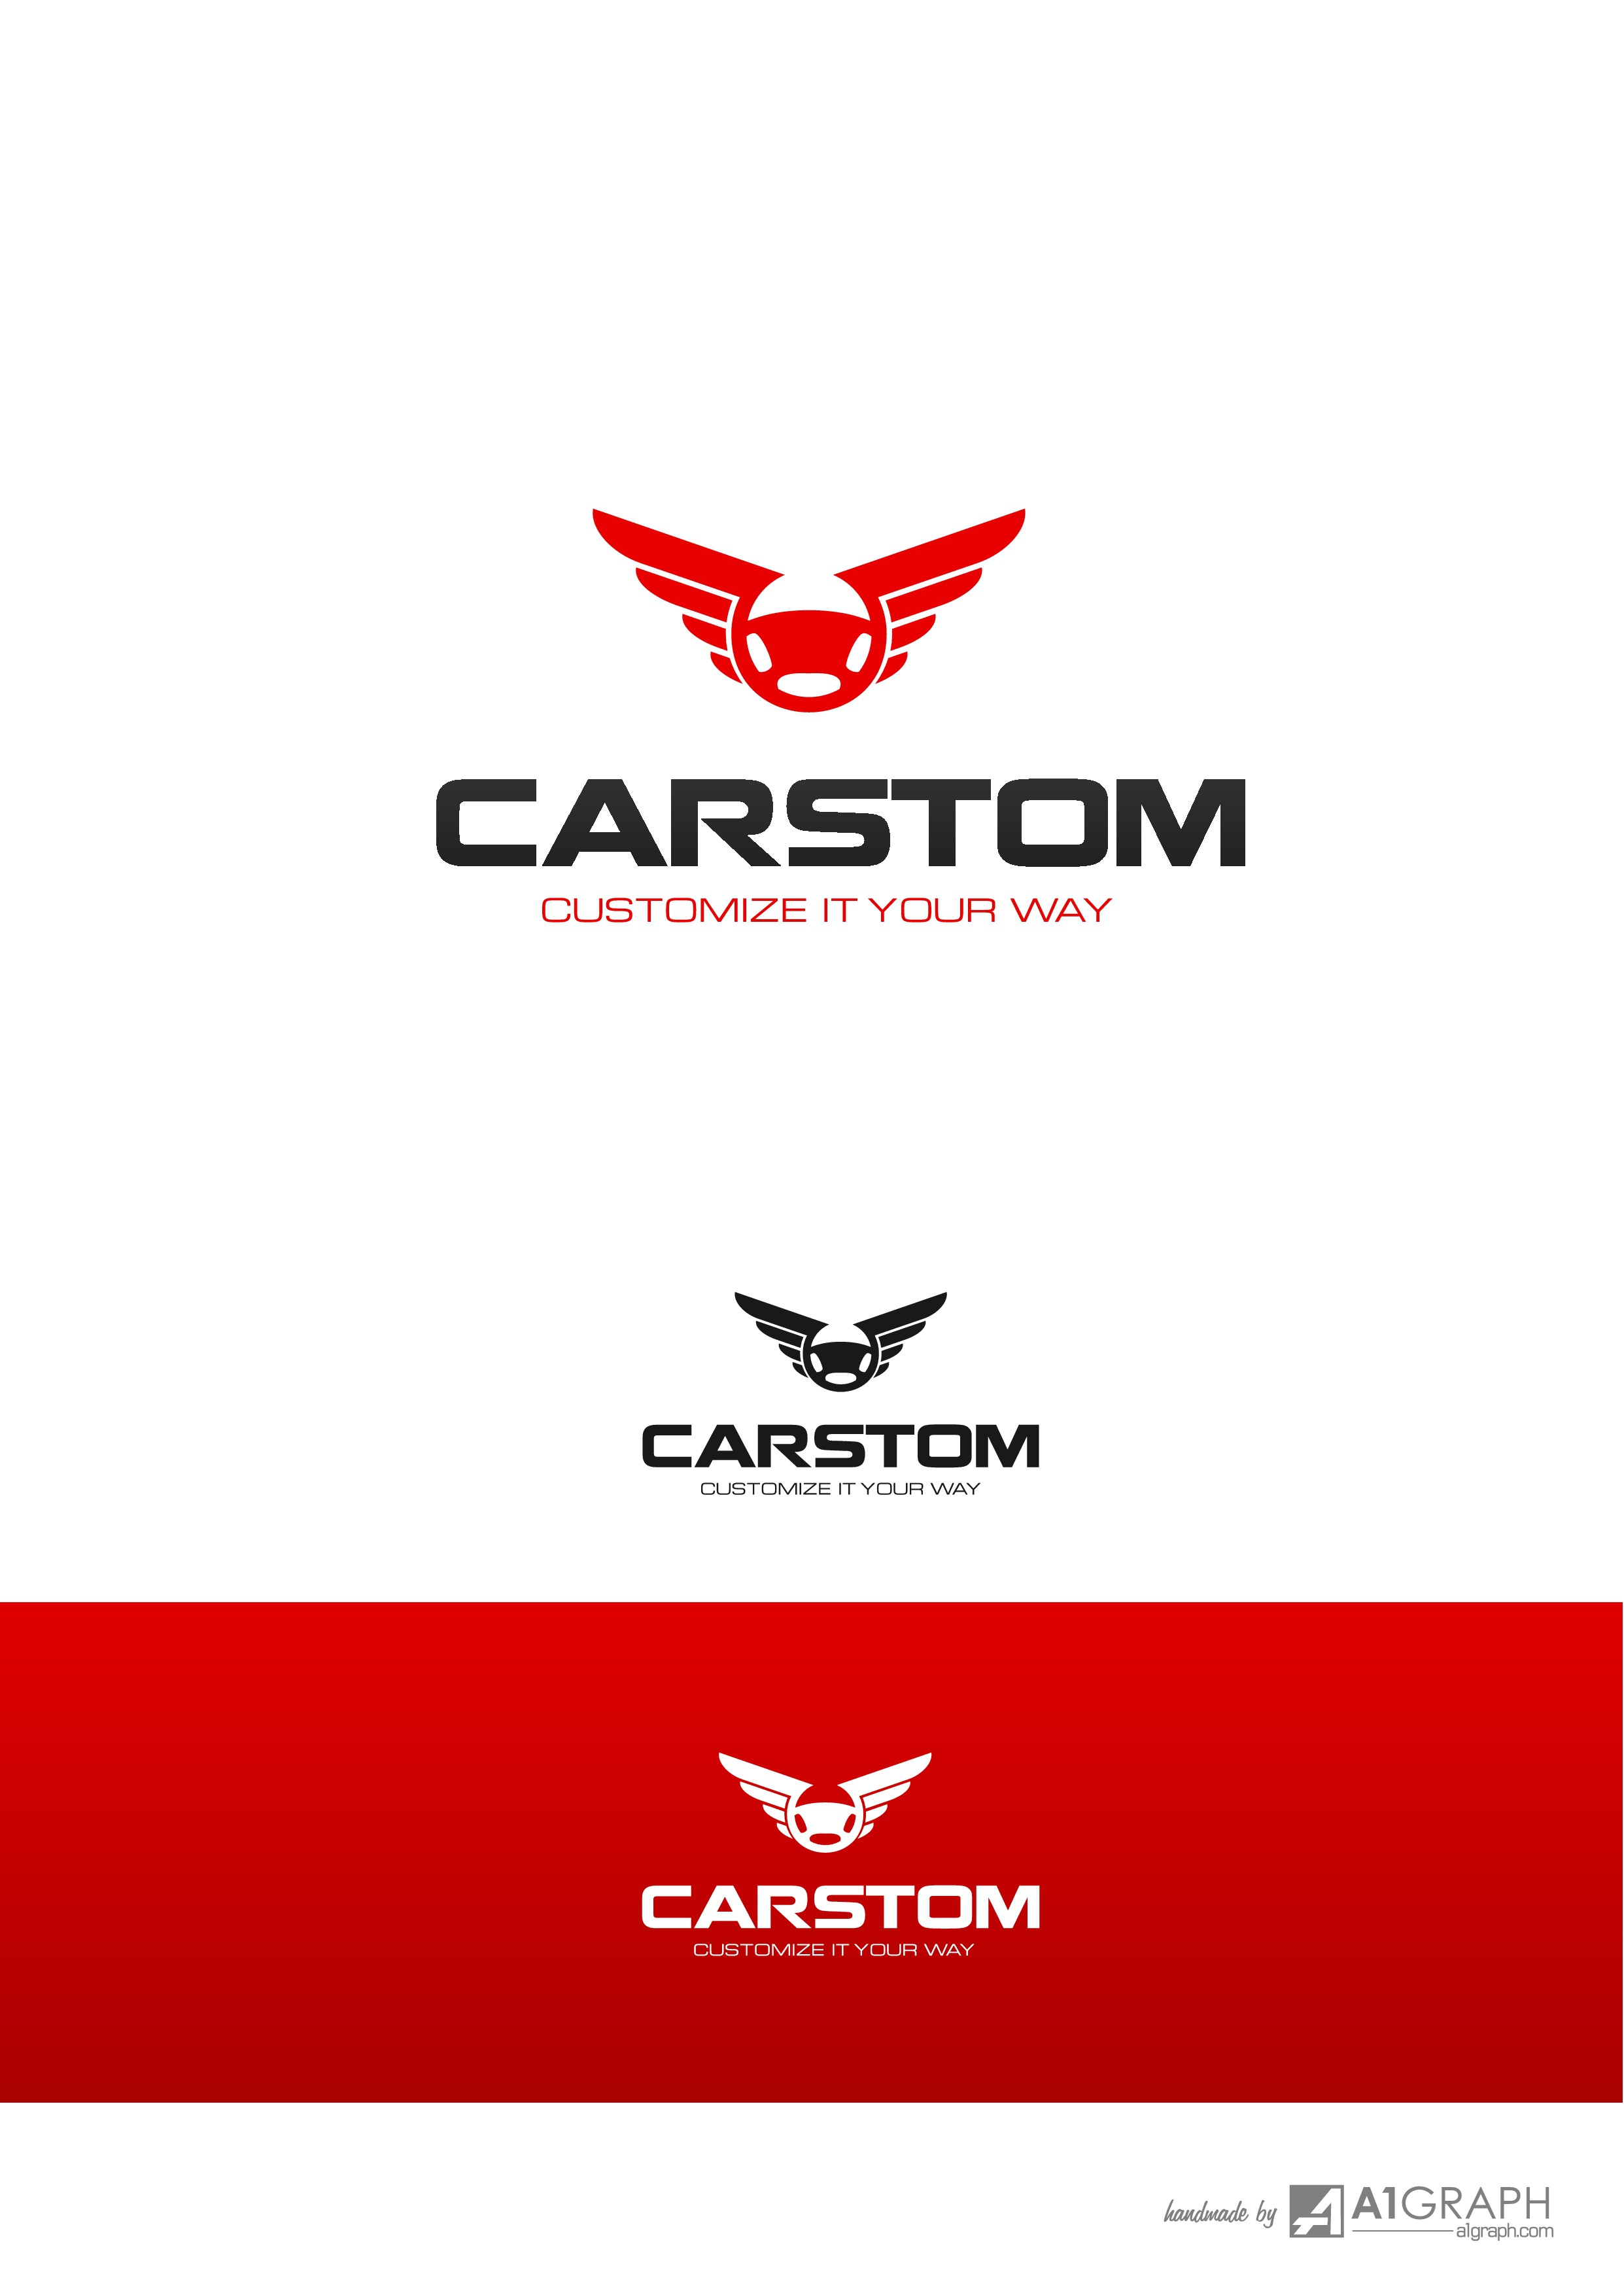 Please help me design an elegant and modern logo for a company specialized in car seat covers